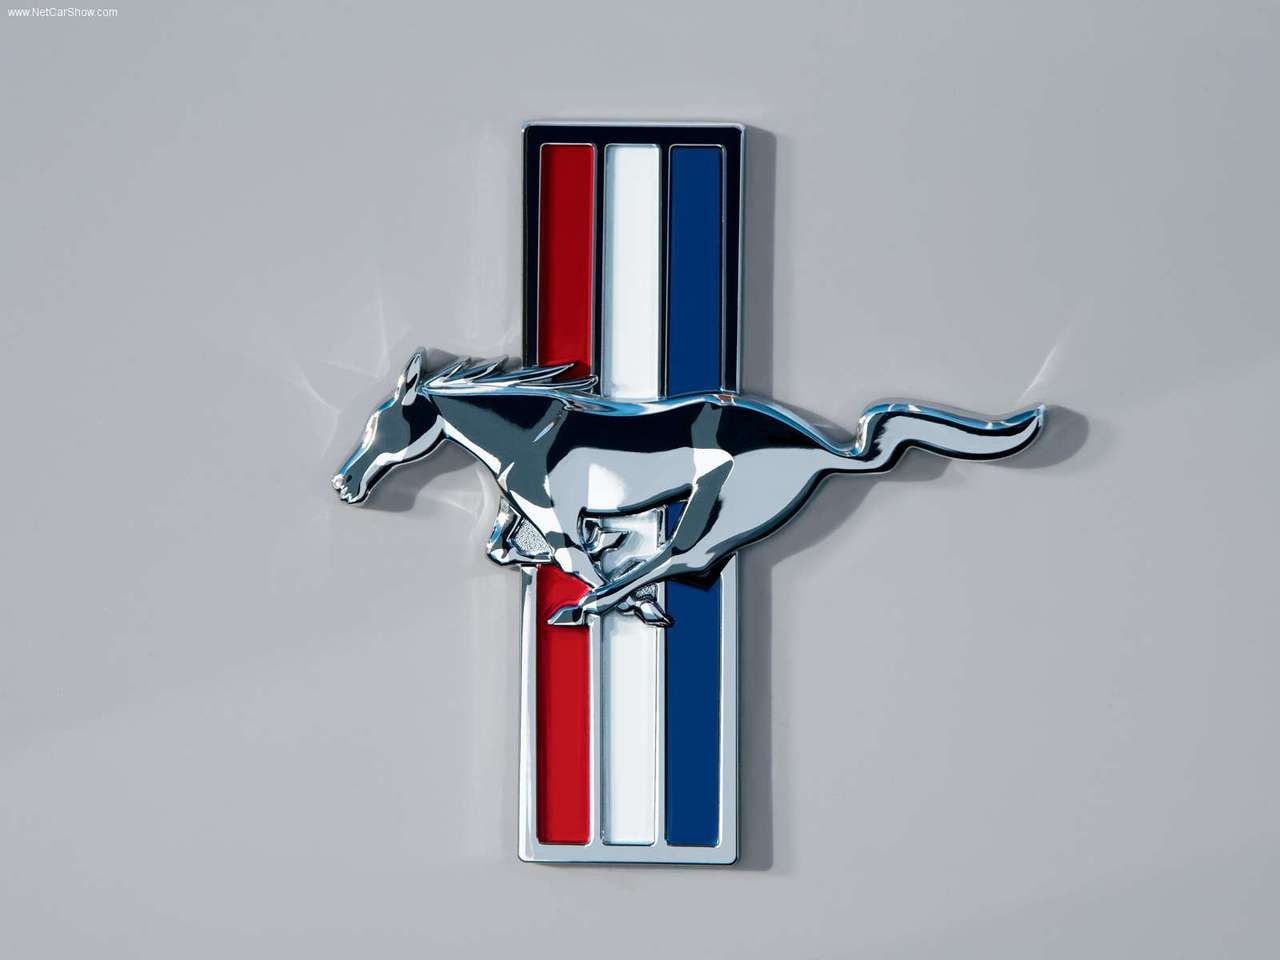 Mustang logo emblem logos pinterest mustang and cars pictures of mustang free greatest mustang picture gallery for your desktop hd wallpaper for backgrounds mustang car tuning mustang and concept car biocorpaavc Gallery